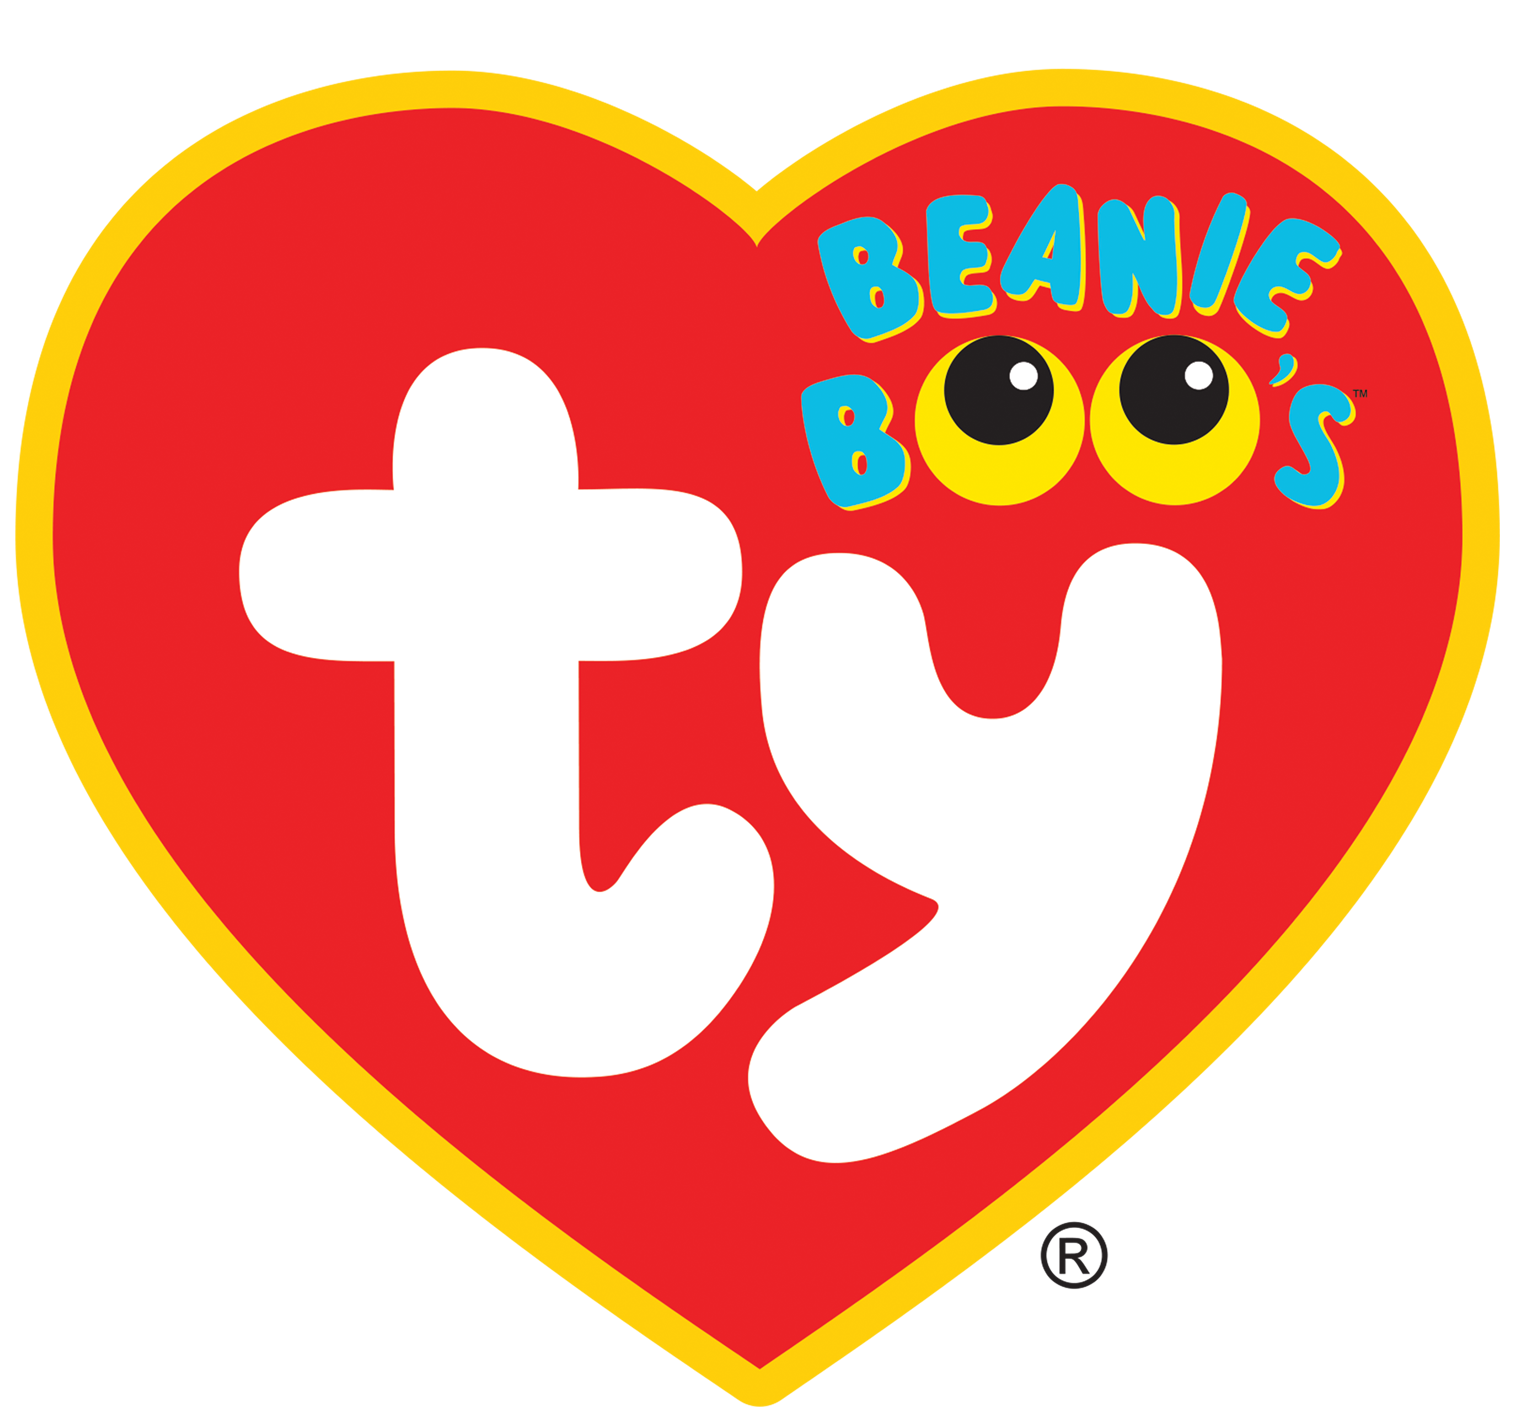 Flix candy the leader. Olaf clipart heart